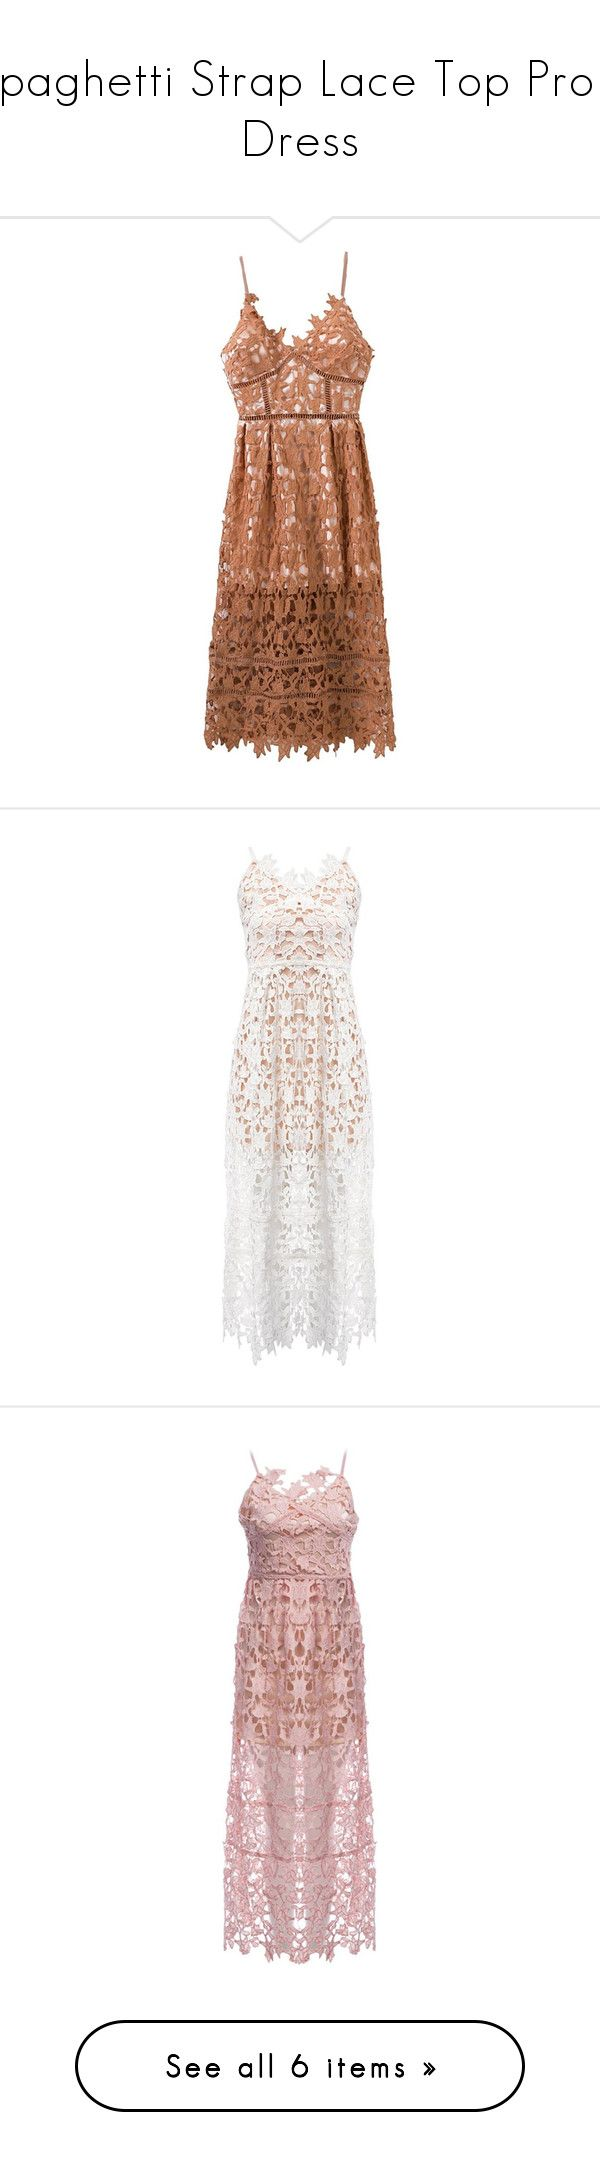 """""""Spaghetti Strap Lace Top Prom Dress"""" by rosegal-official ❤ liked on Polyvore featuring dresses, rosegal, lace slip dresses, brown lace dress, nude lace dress, nude dress, lace cocktail dresses, lacy white dress, lace dress and lace prom dresses"""